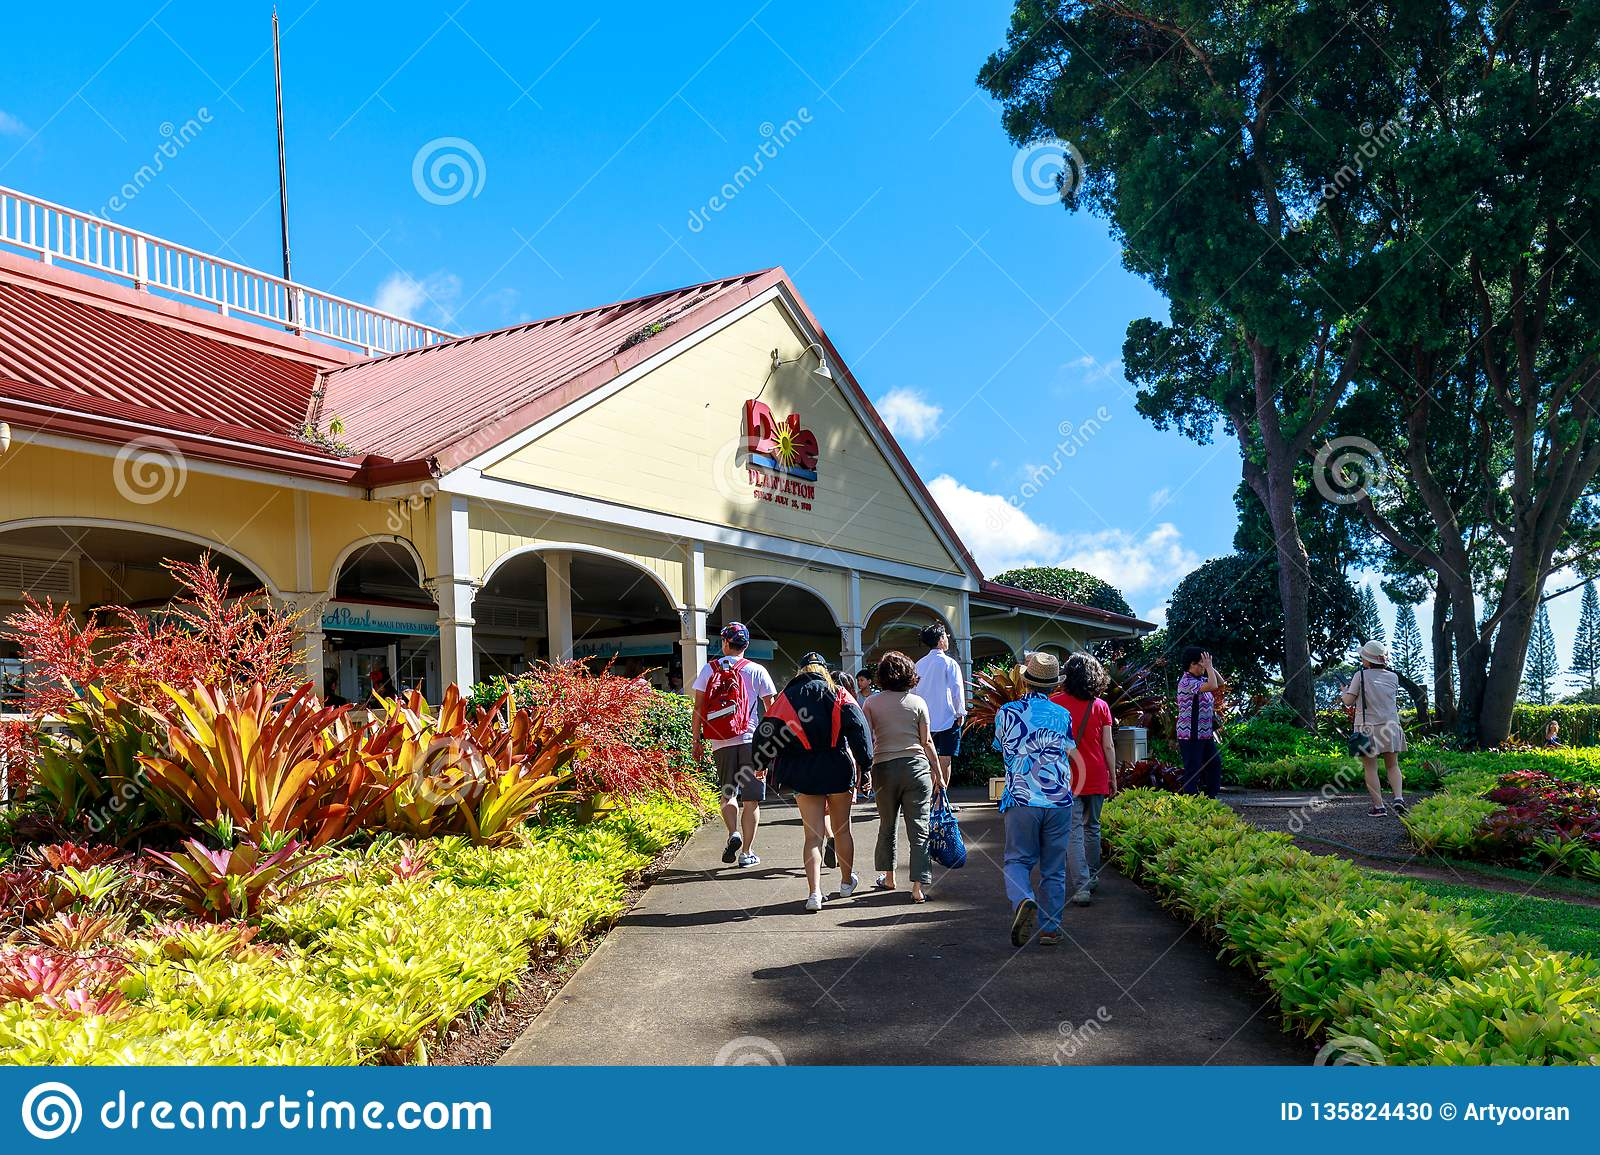 View Of The Dole Pineapple Plantation In Wahiawa Tour Destination Editorial Image Image Of Commercial Pineapple 135824430